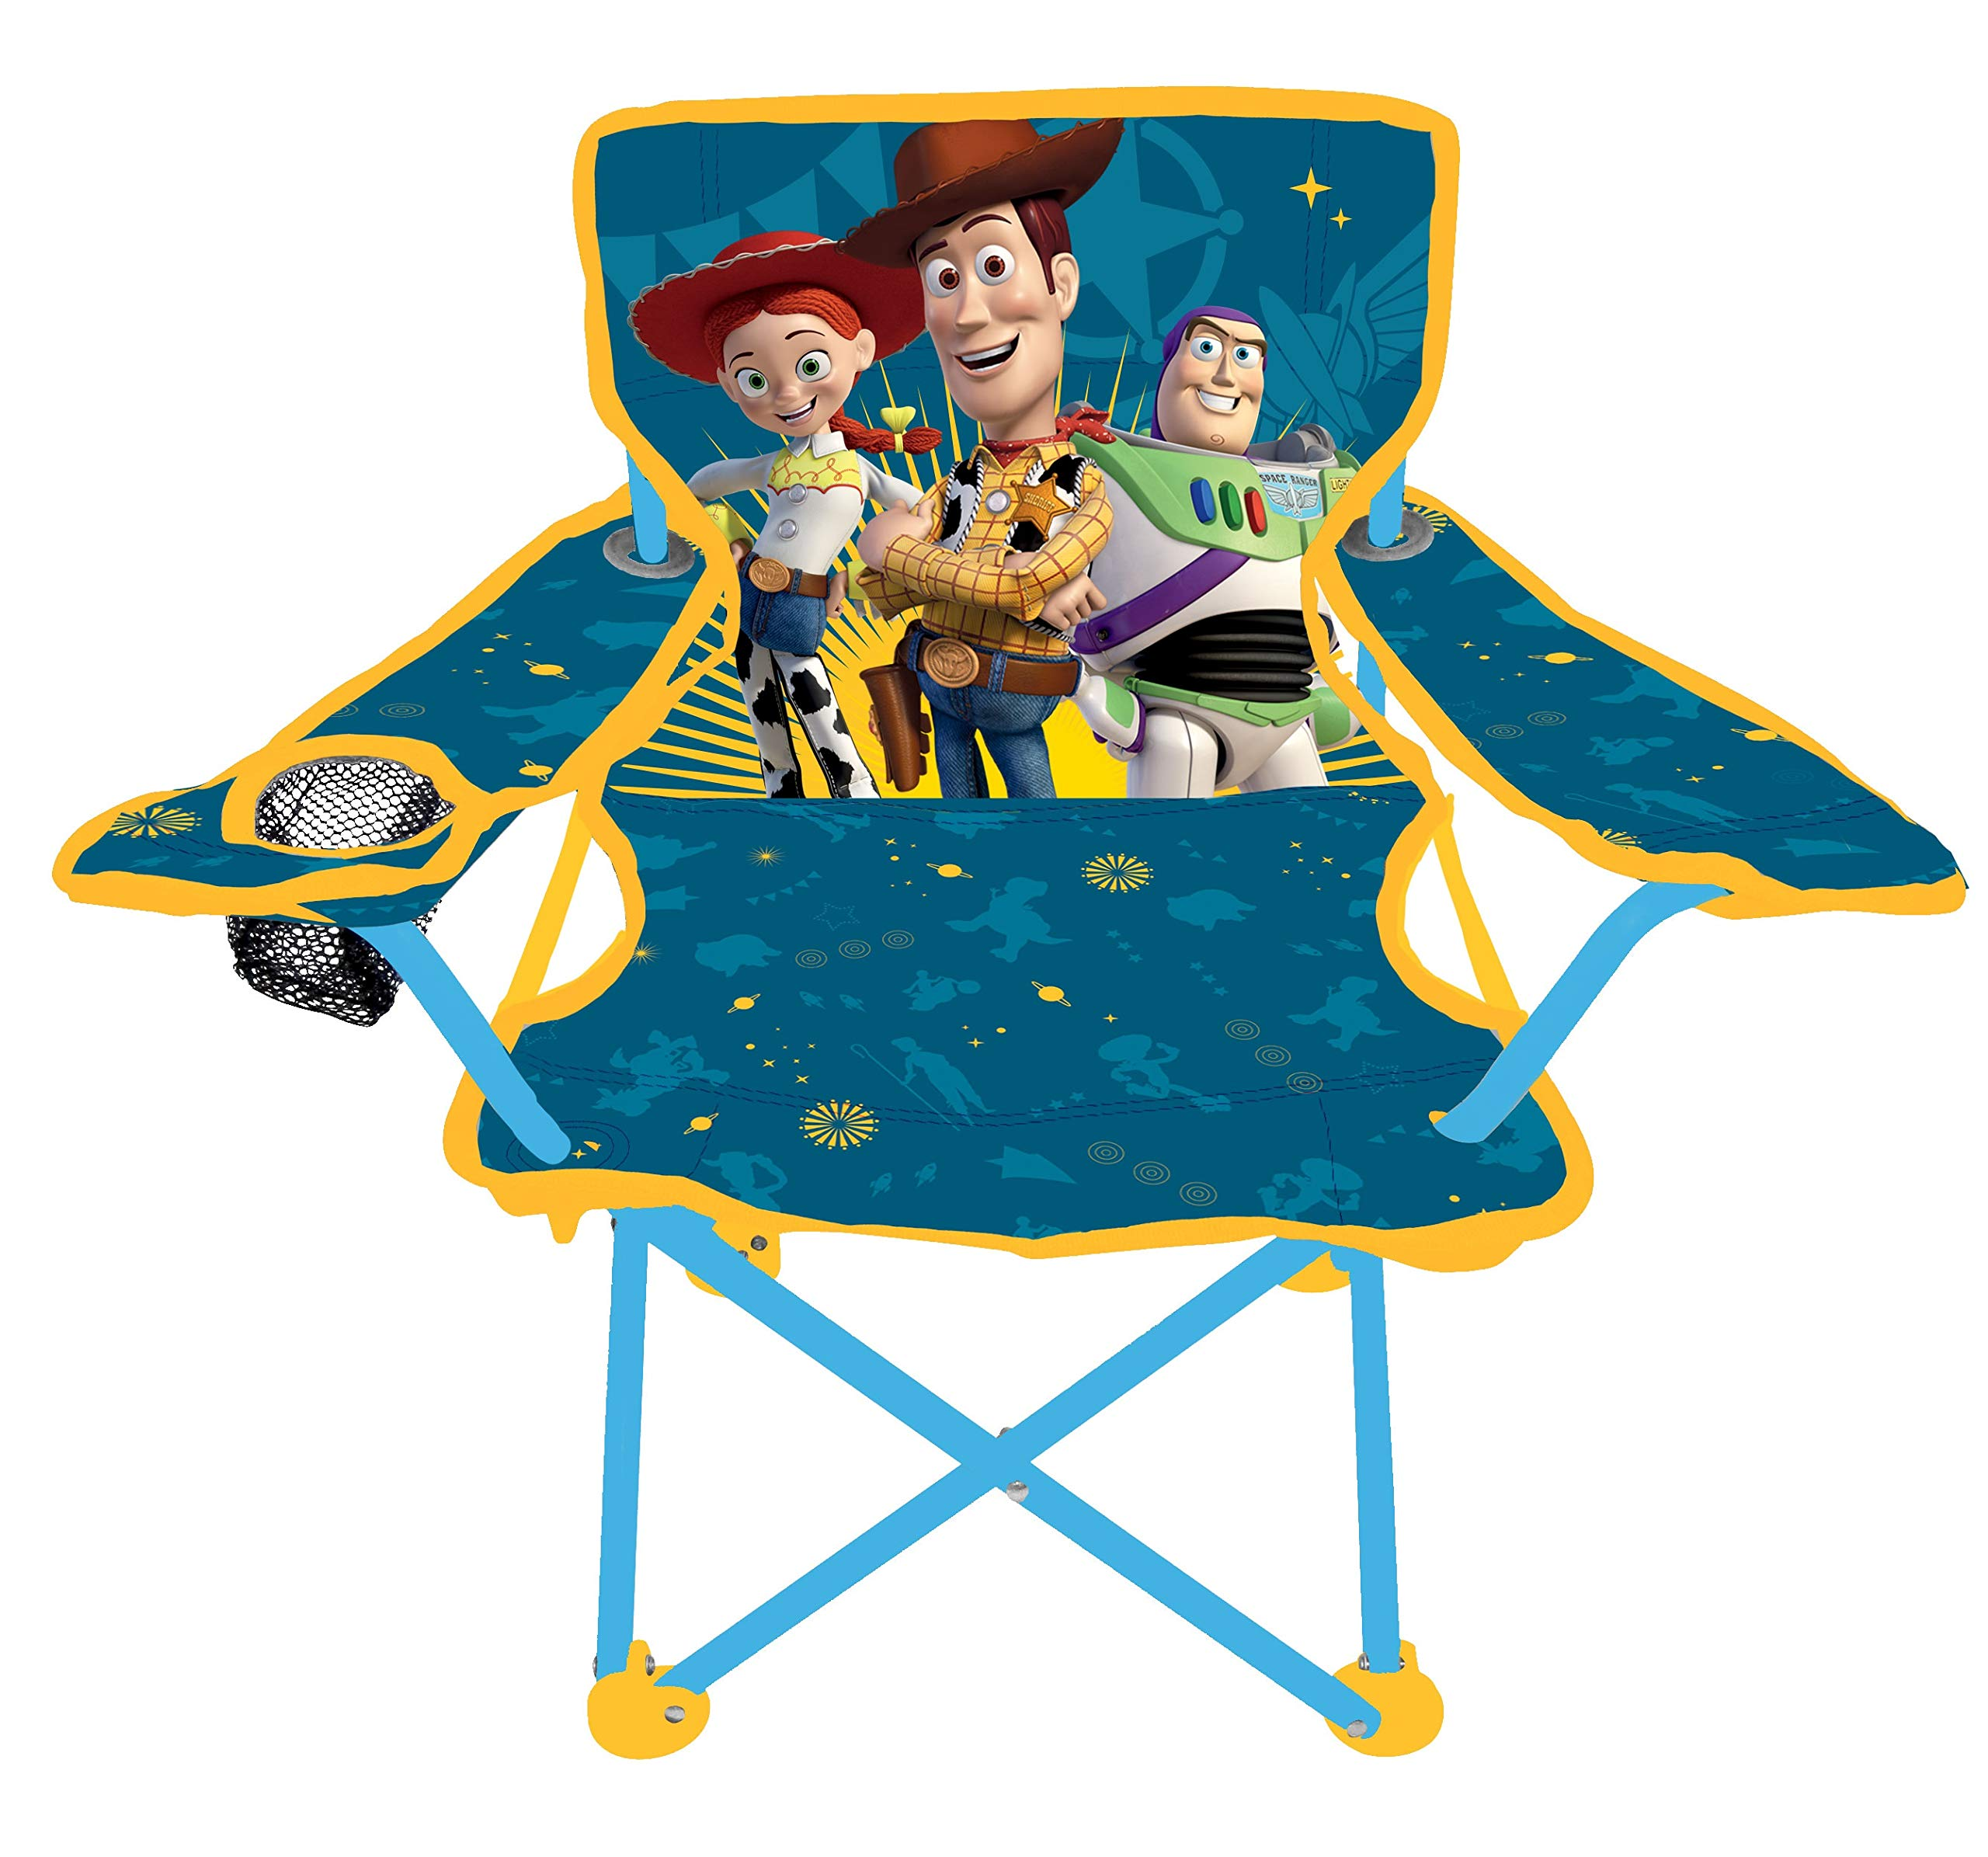 Jakks Pacific Toy Story 4 Camp Chair for Kids, Portable Camping Fold N Go Chair with Carry Bag